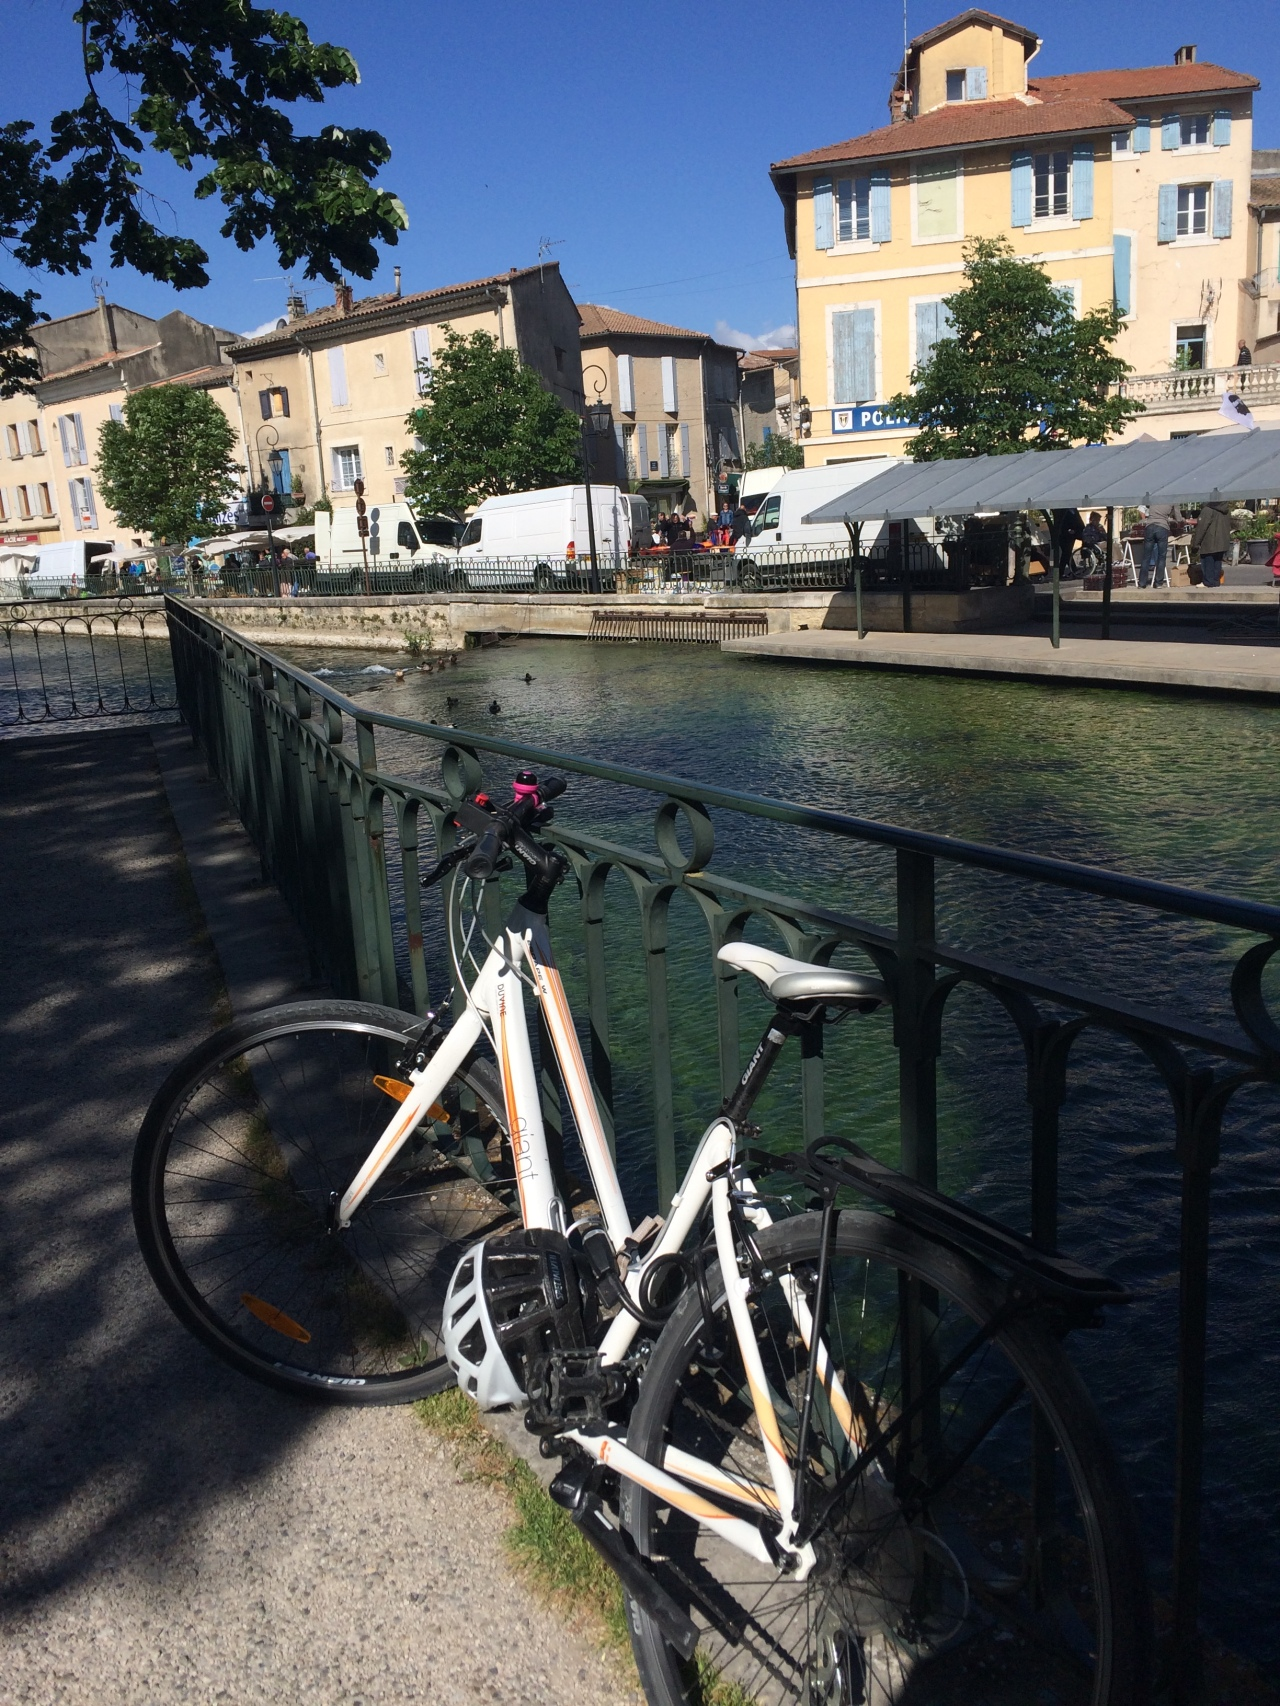 Two Weeks in Provence – Day 6 – Back on the bike & head-on into theMistral